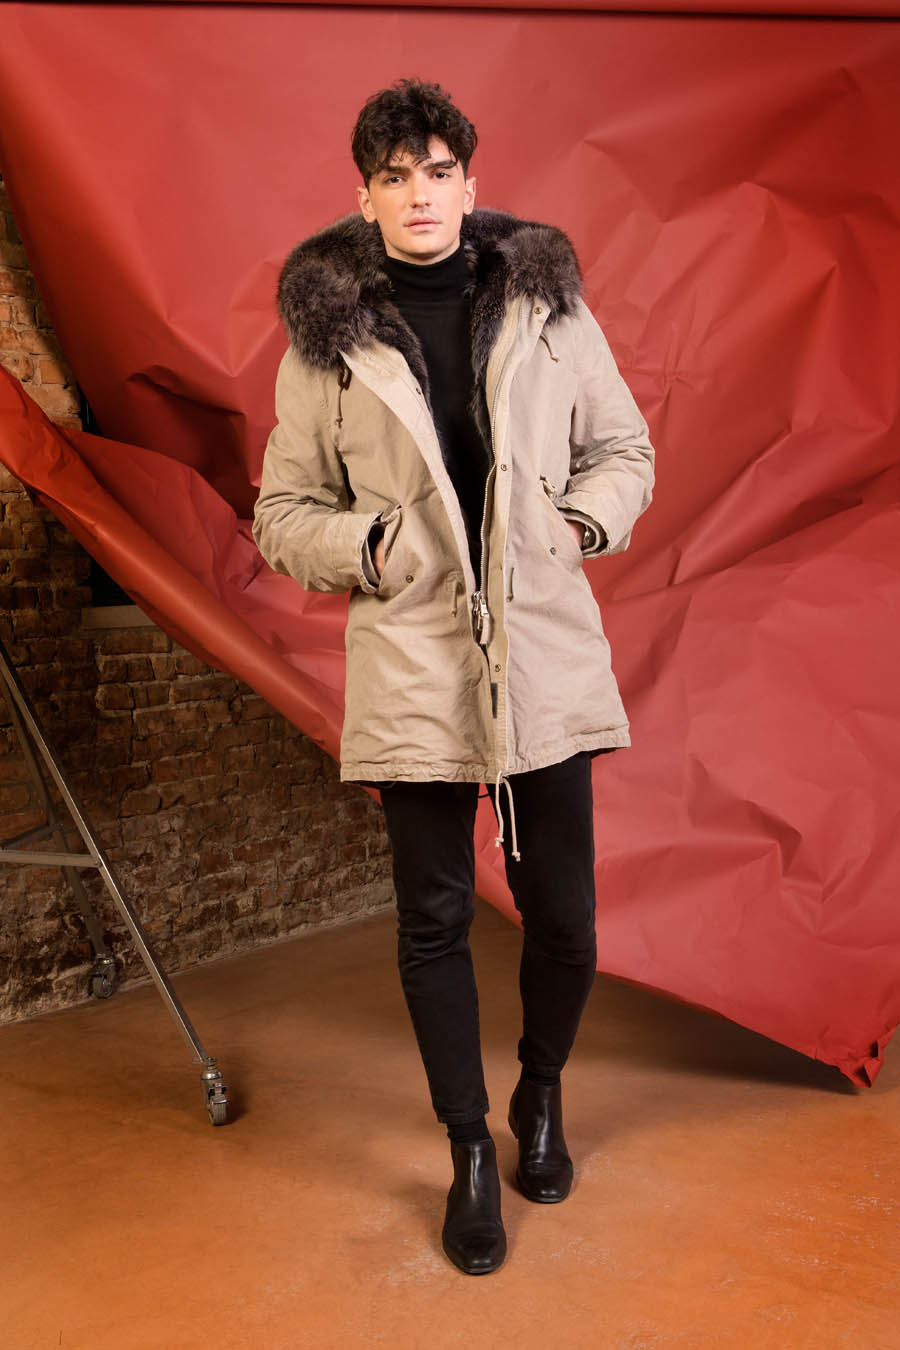 PK19300VO 0297 02 gold rush man parka fur brown - Fall Winter 2019-20